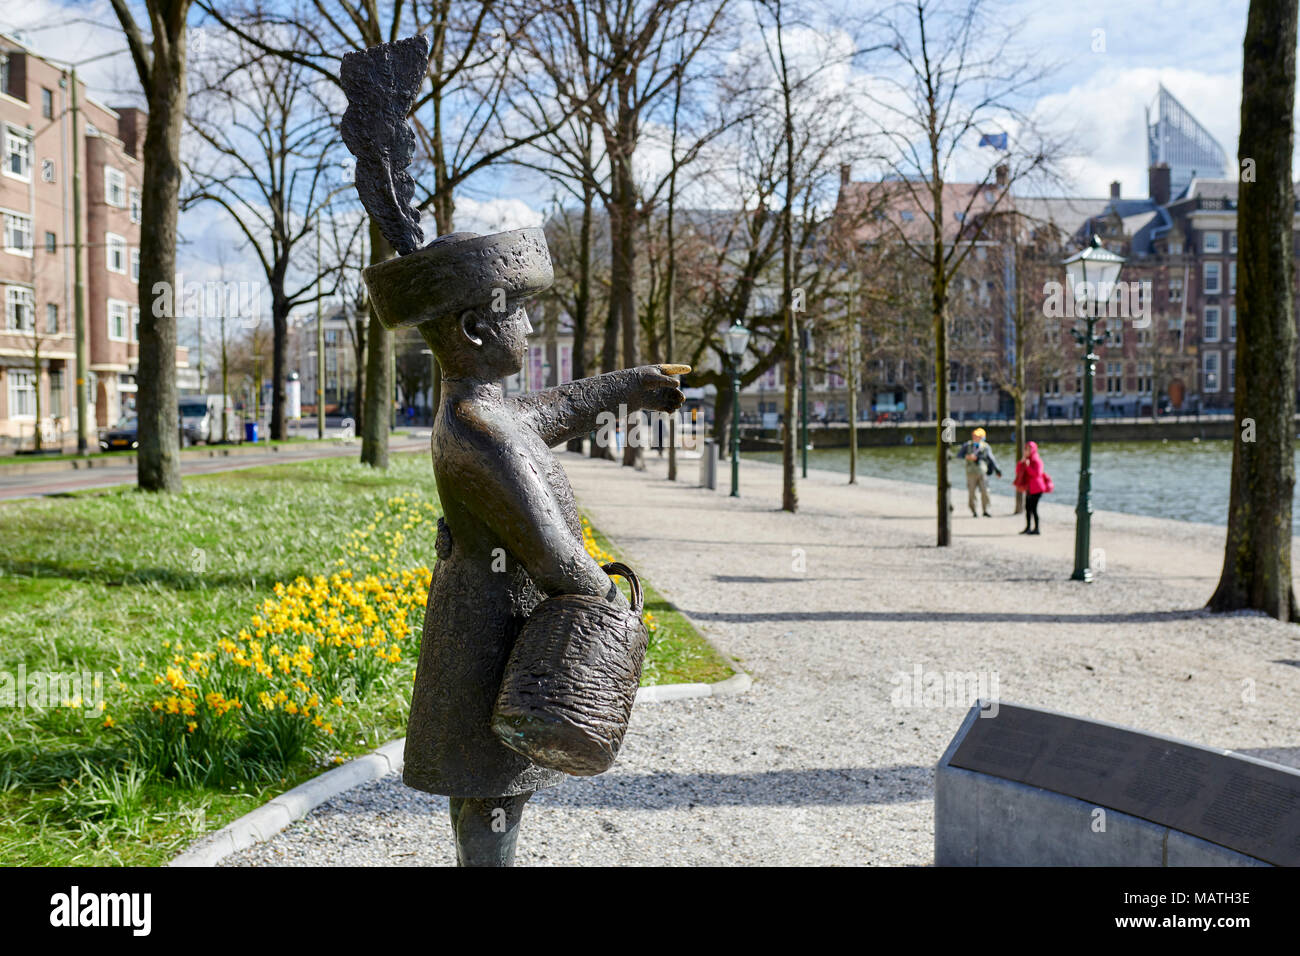 Sculpture of 'Haagse Jantje' at the Hofvijver in the center of The Hague, Netherlands. For Dutch people is Haagse Jantje welknown by a childs's song. - Stock Image